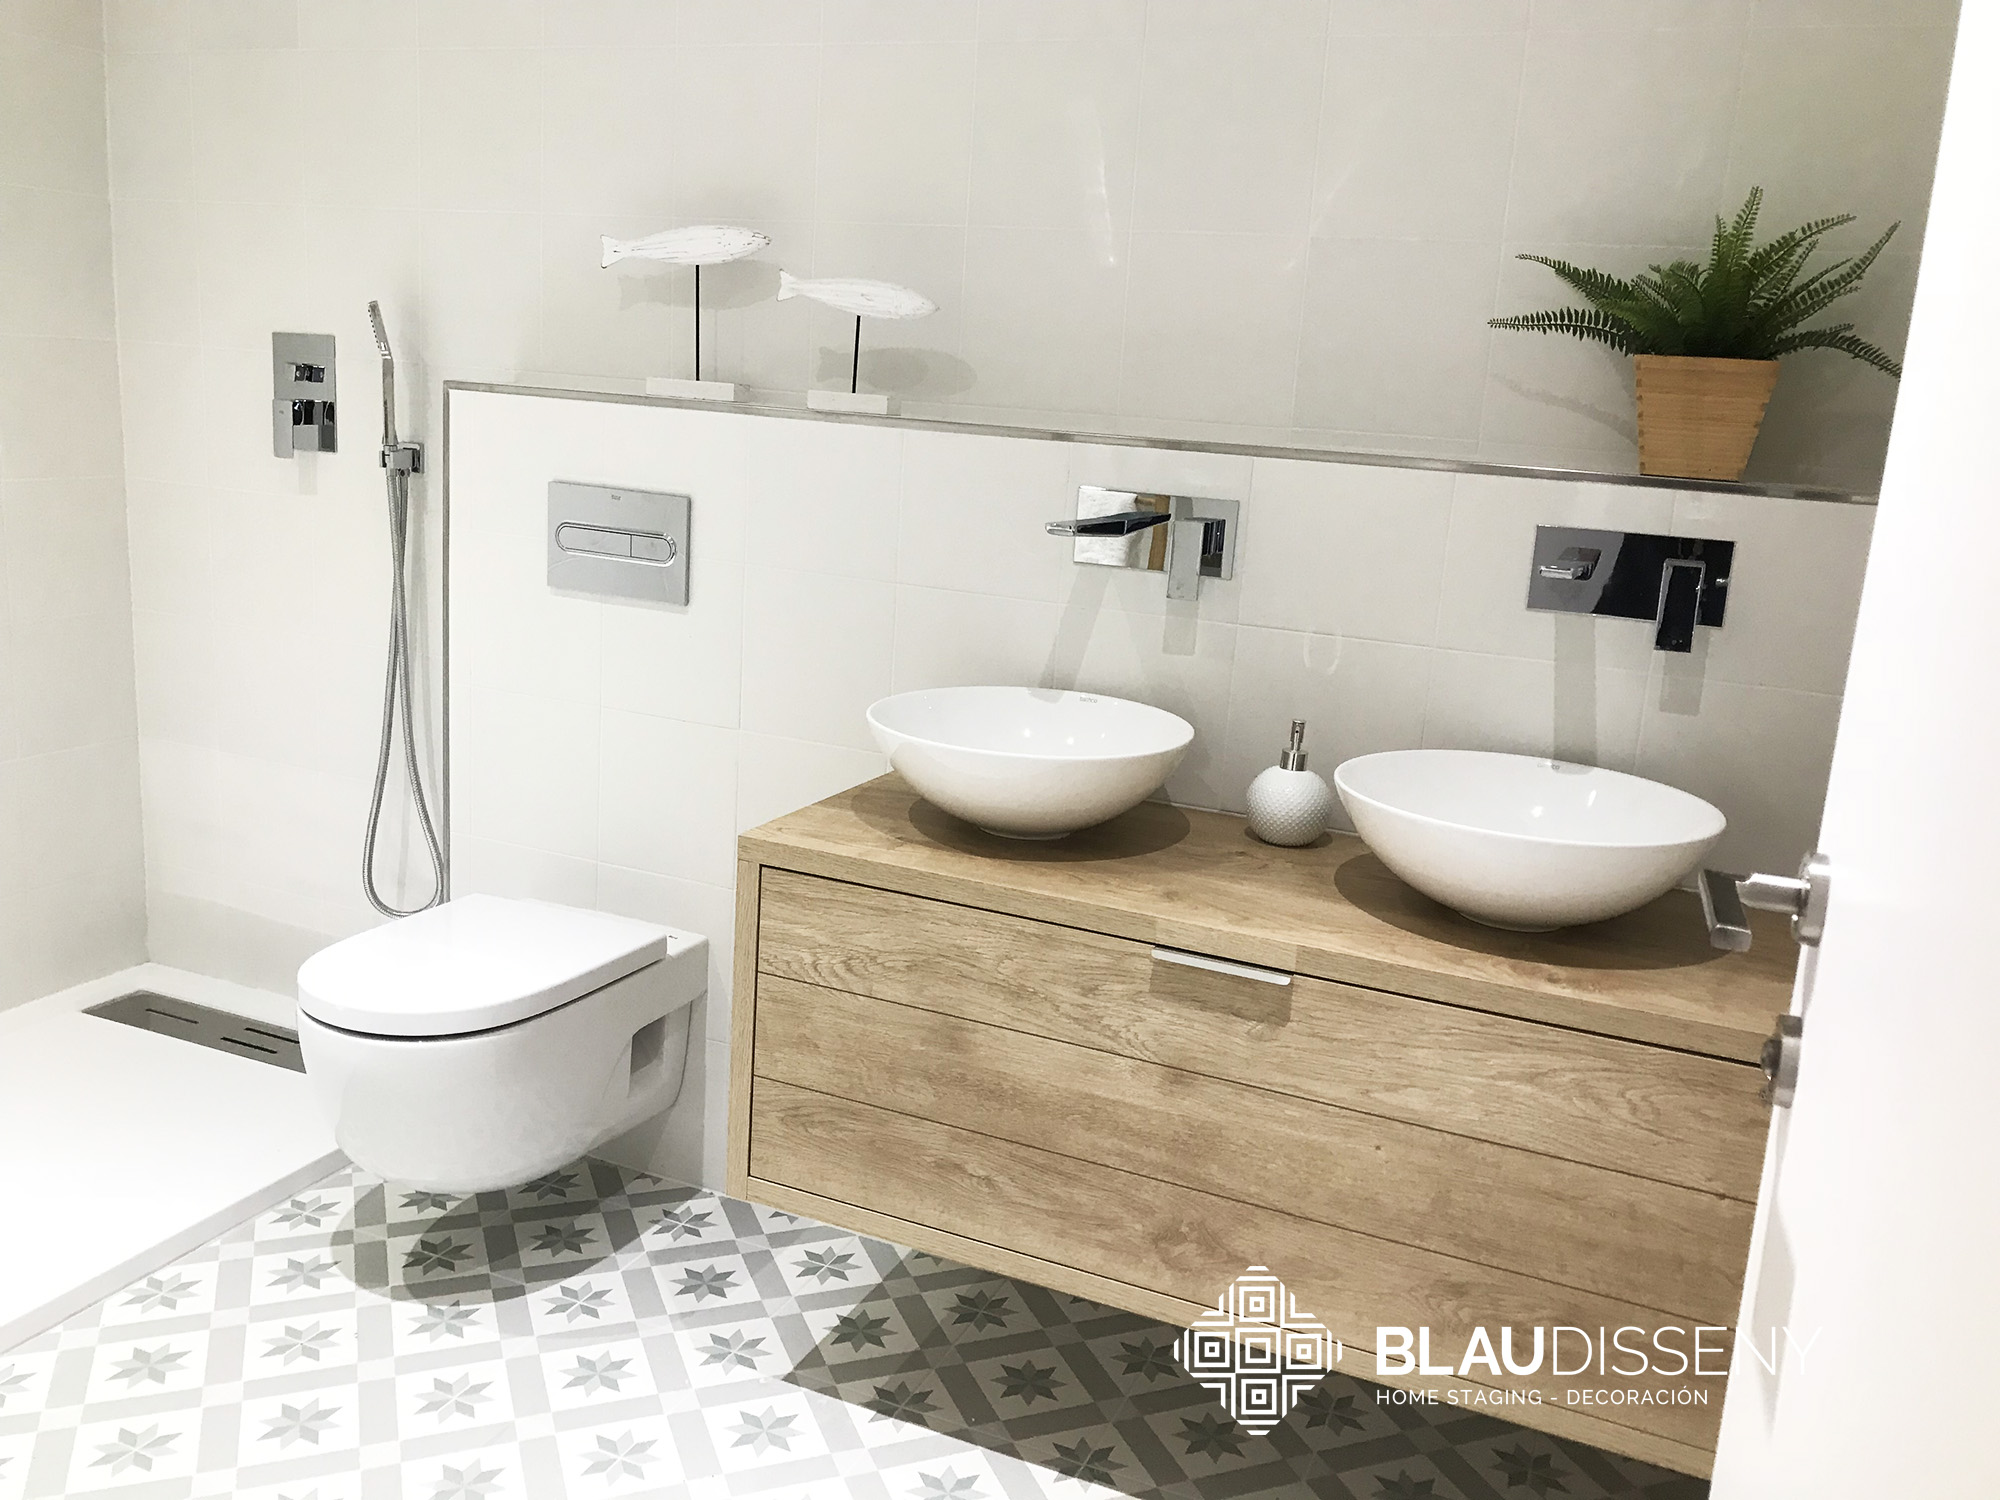 Blaudisseny-home-staging-santa-catalina-baño-2-despues-logo